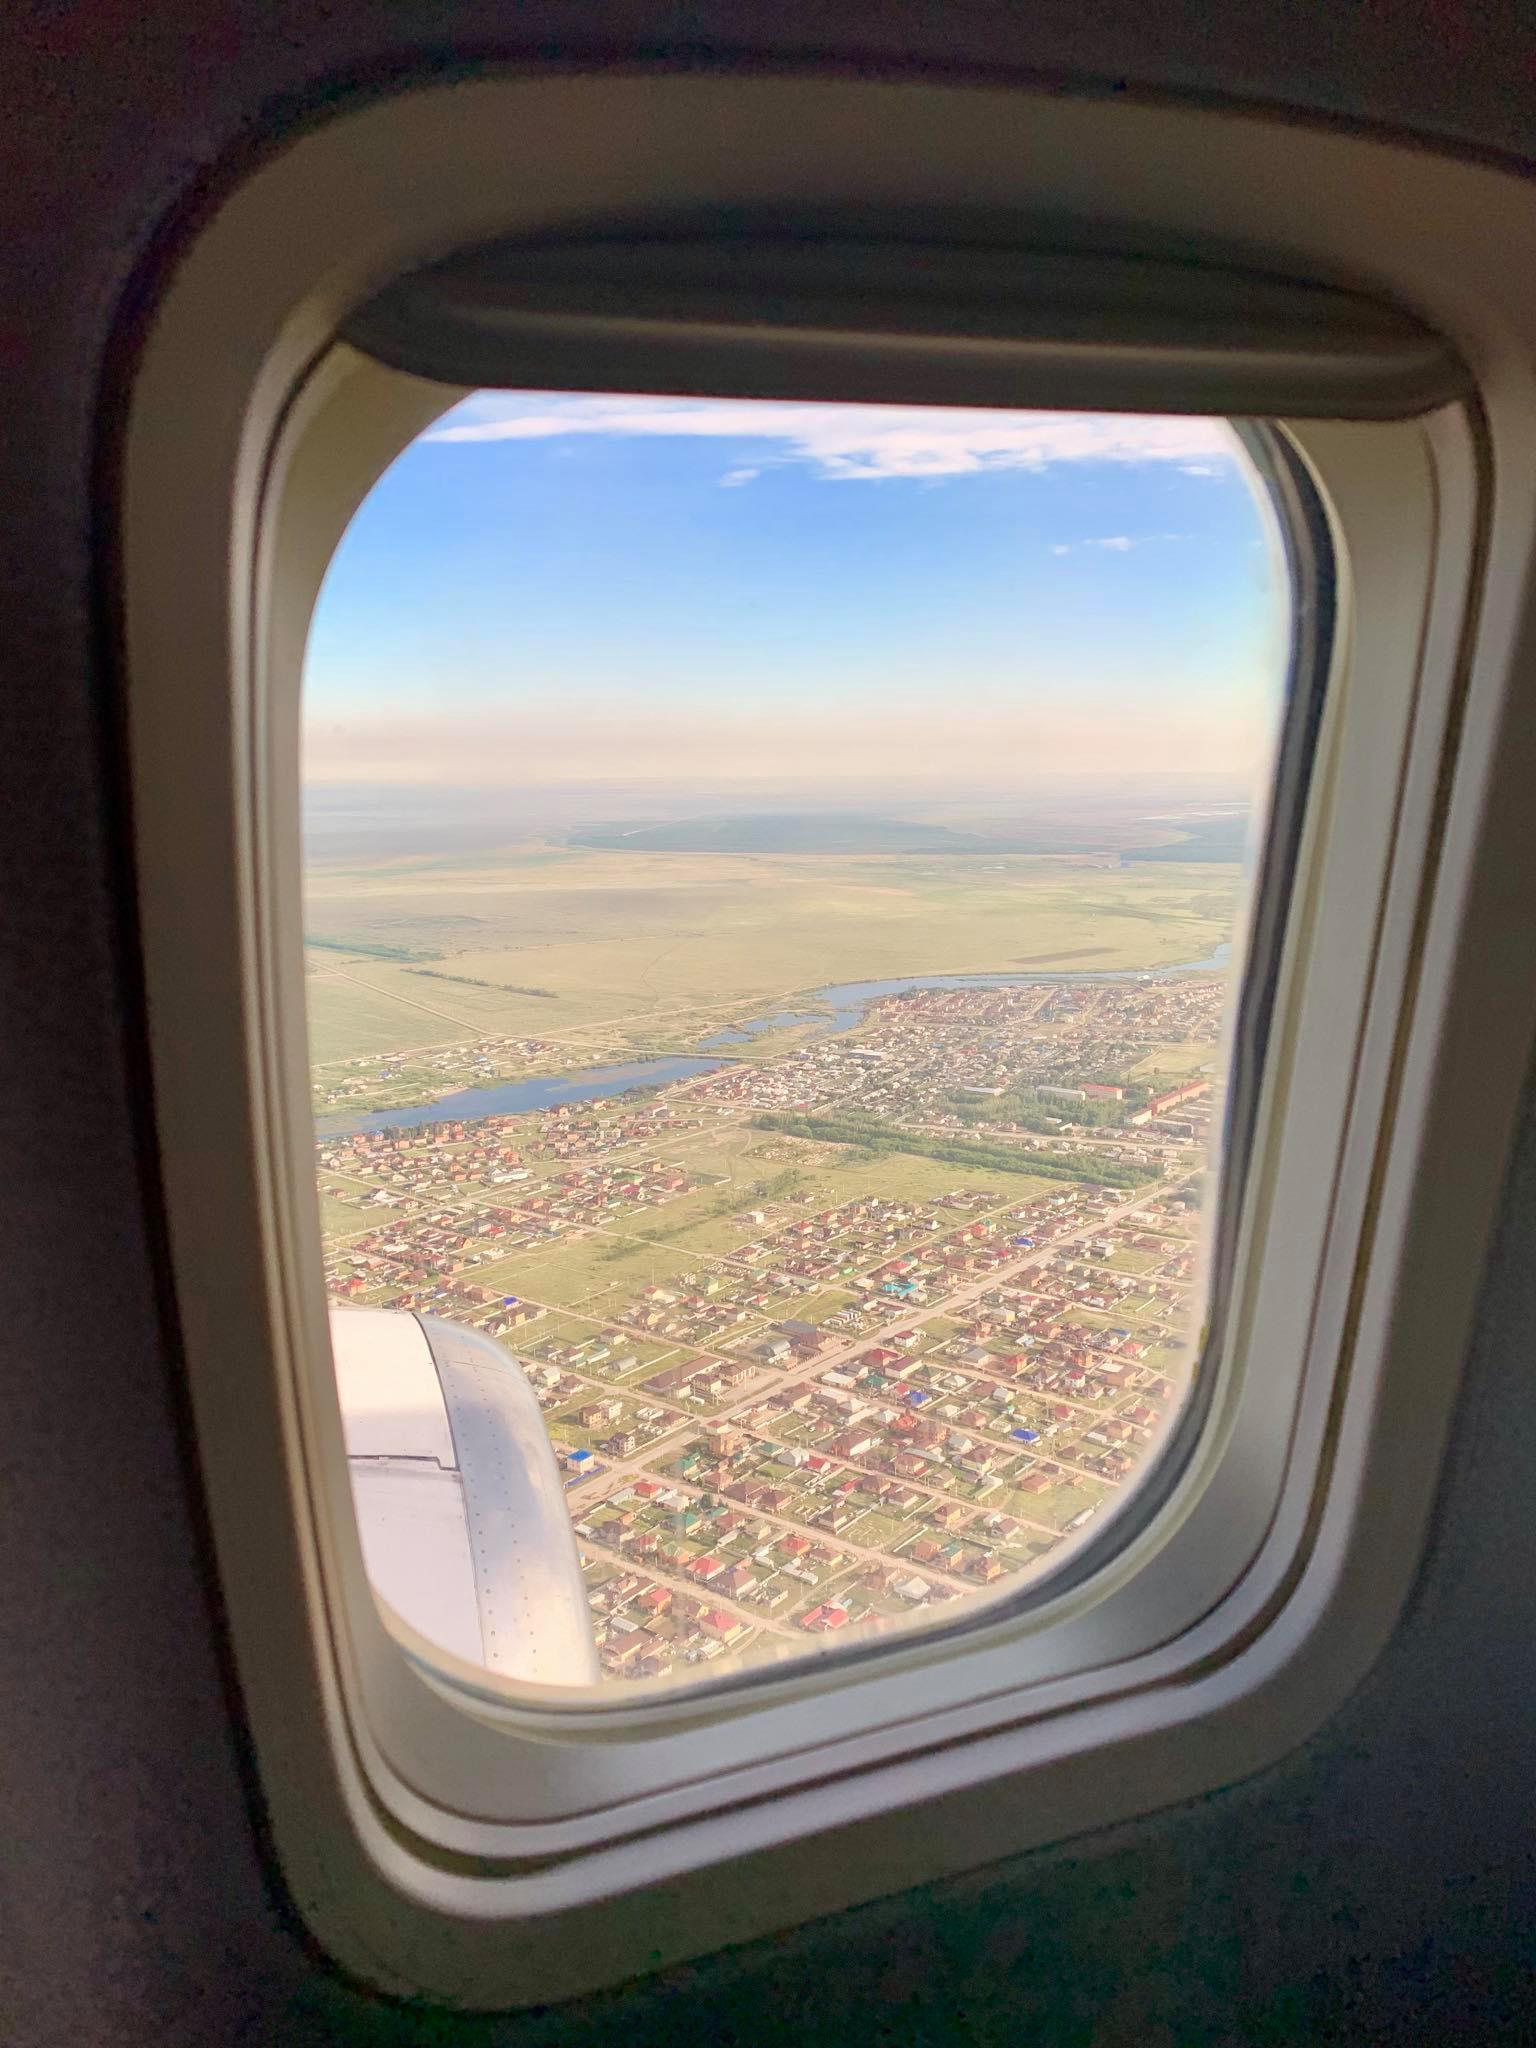 Kach Solo Travels in 2019 Hello from UZBEKISTAN23.jpg